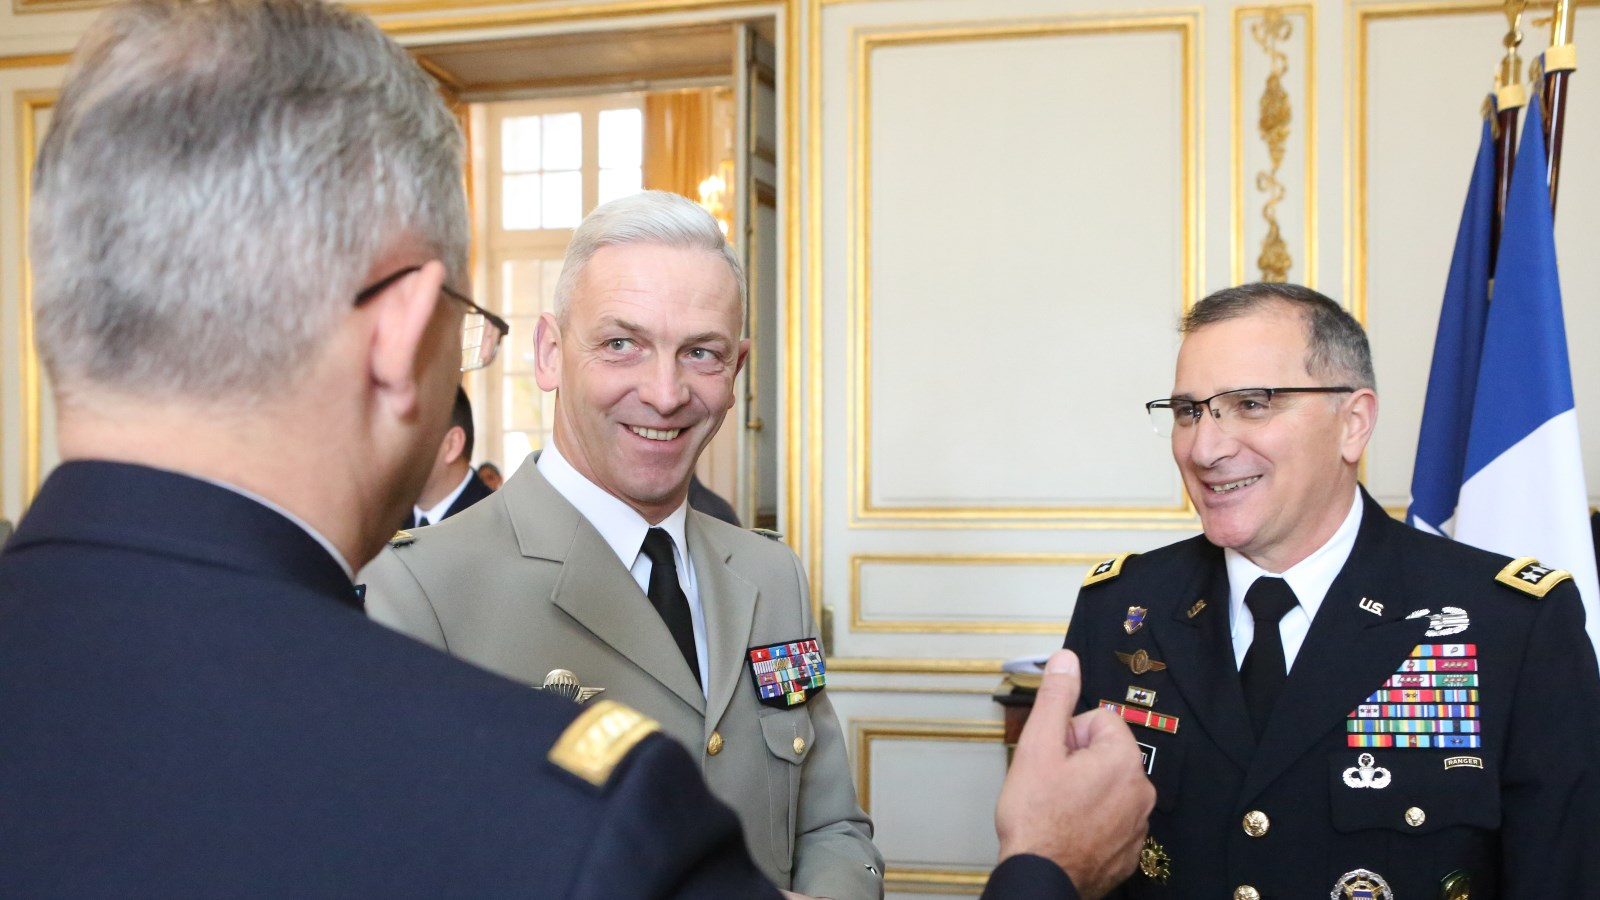 General Mercier with his Counterpart General Scaparrotti in France and Belgium